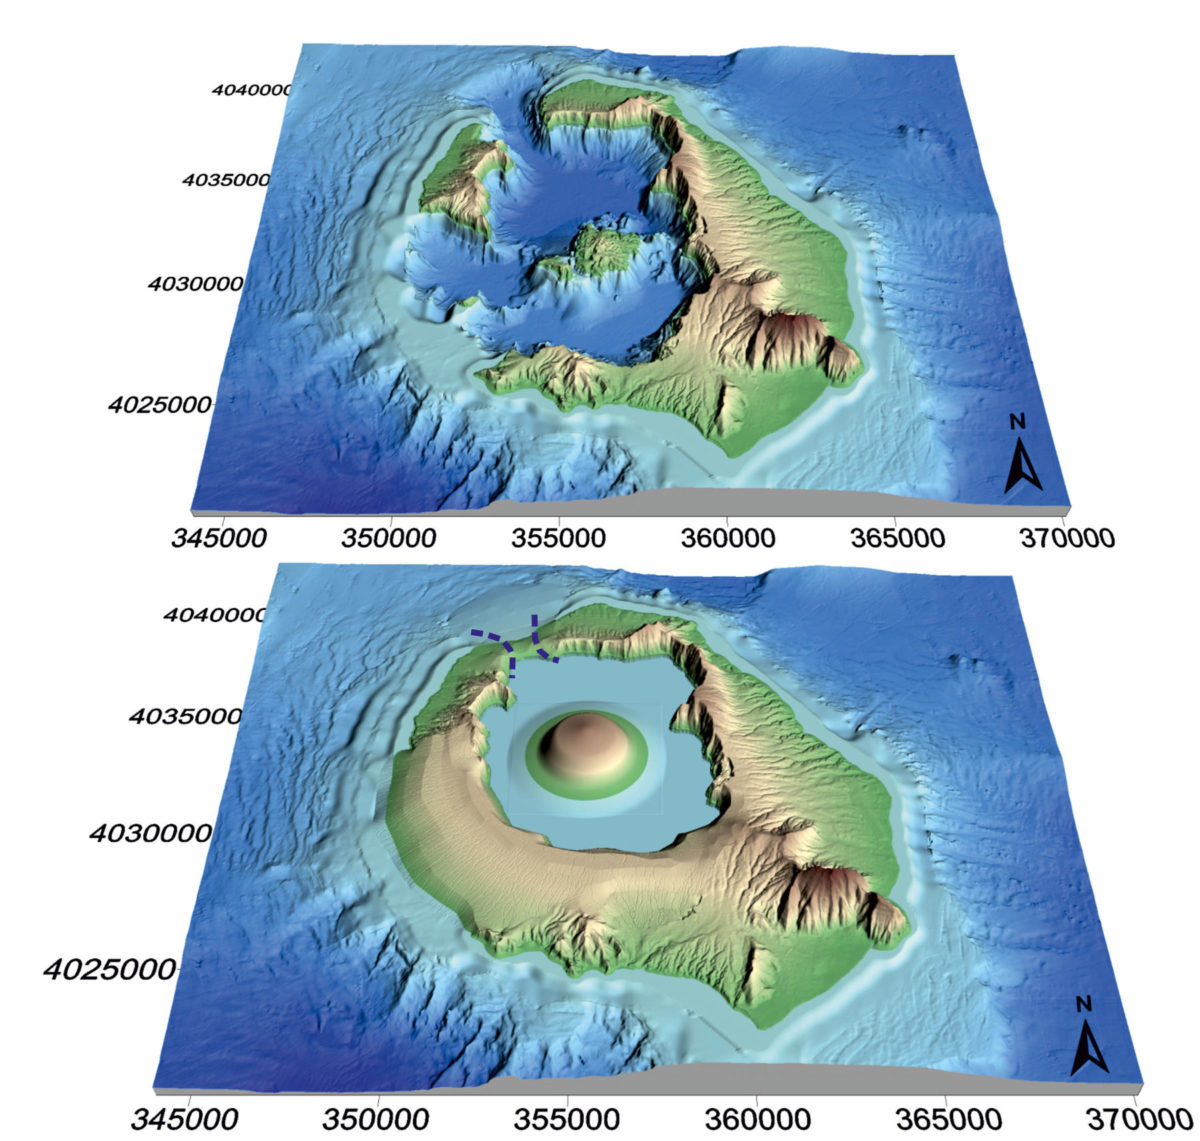 Digital elevation model (DEM) reconstruction of Santorini comparing (a) the present-day topography and (b) the proposed topography prior to the Minoan eruption.